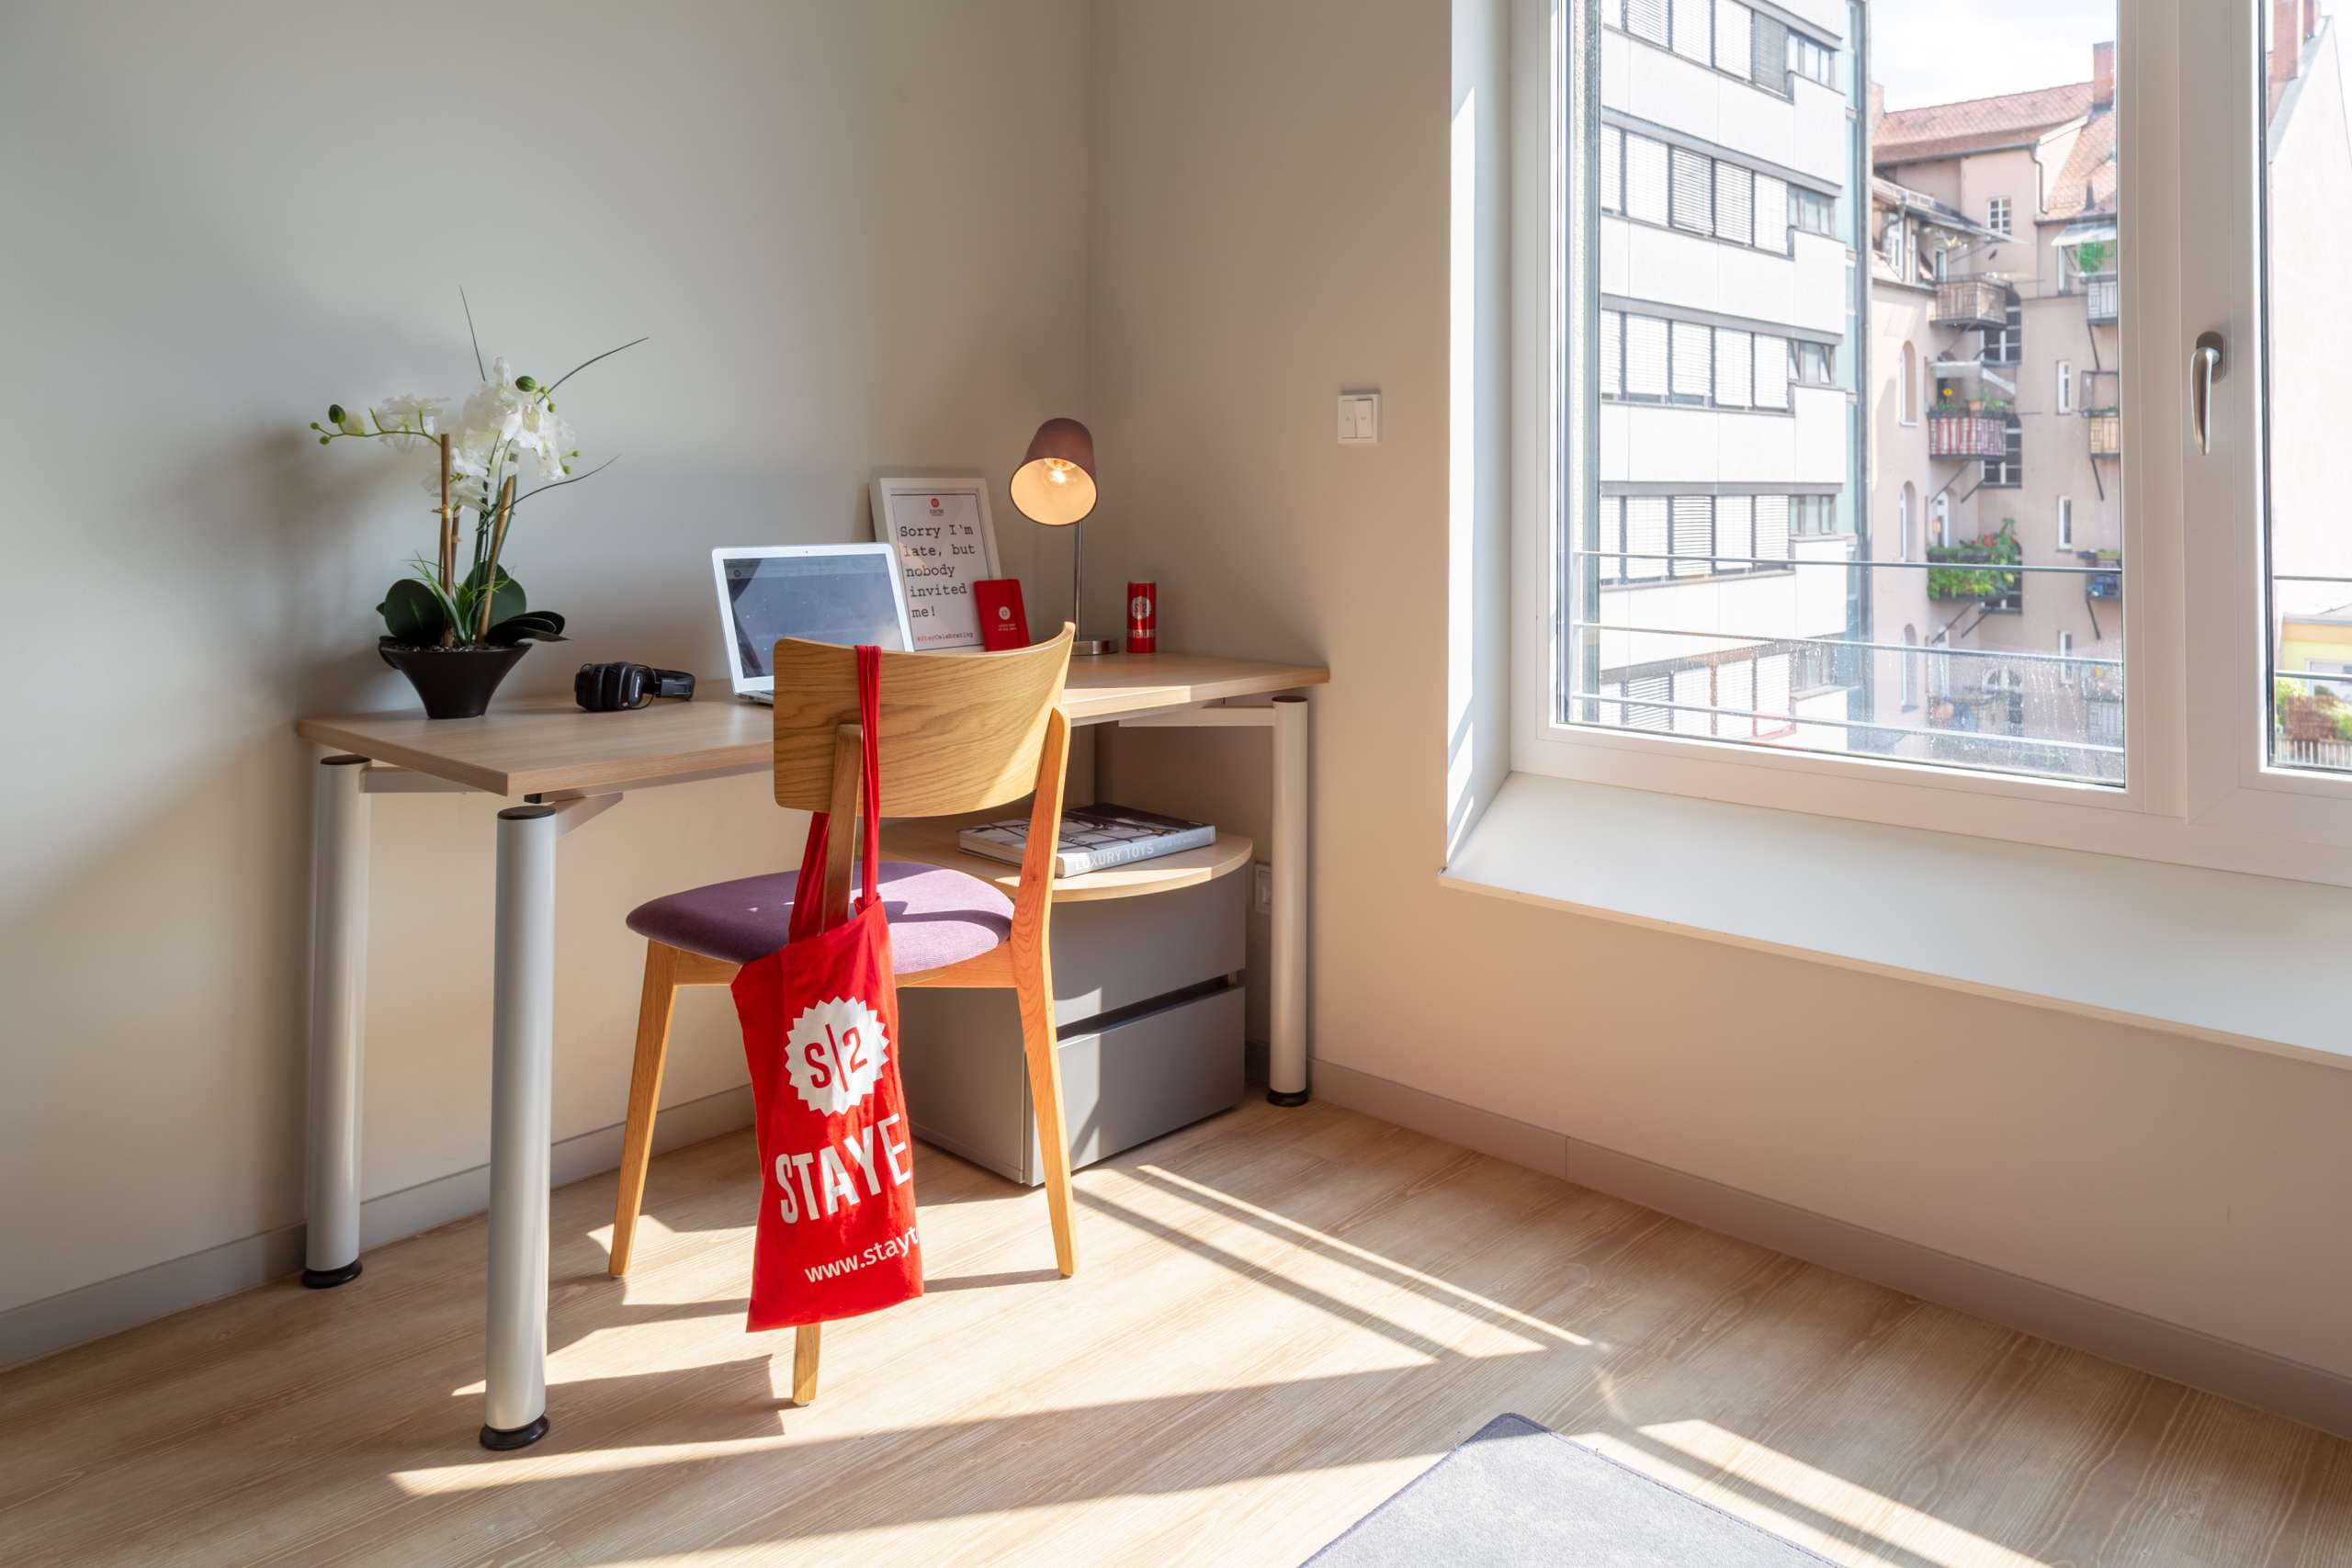 Stylische Studentenapartments in Altstadtnähe | Staytoo Apartments in Schoppershof (Nürnberg)